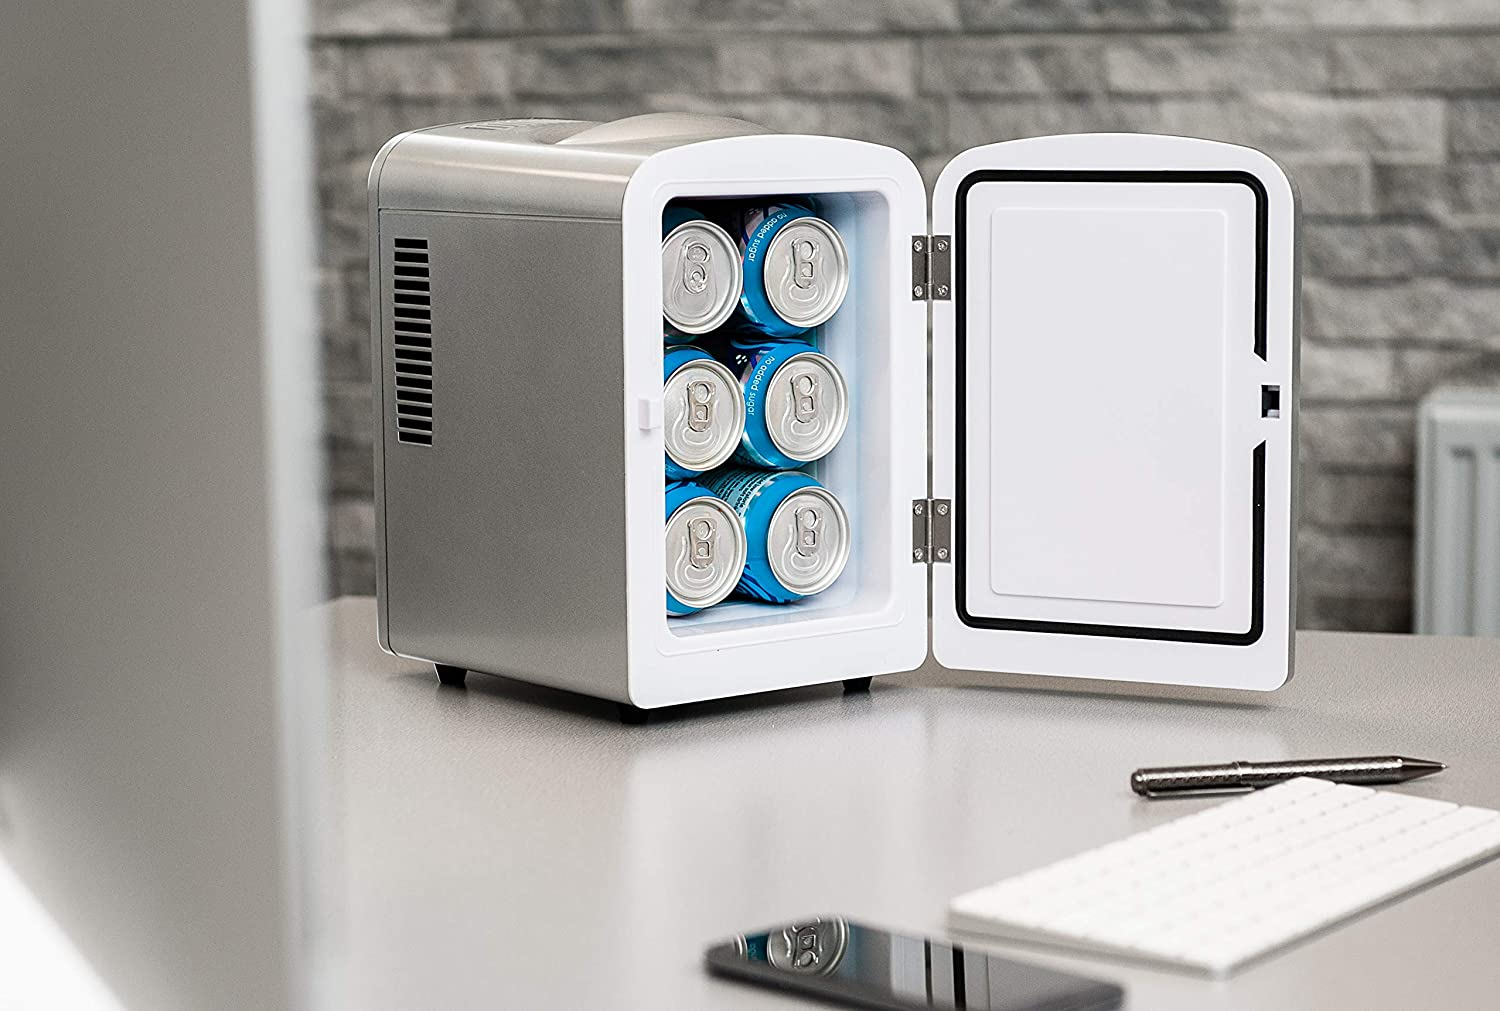 Fineway Portable 4L Mini Fridge Cooler Chiller and Warmer -Ideal for Home Bedrooms Offices Camping Car Comes with DC 12V power cord Can Drinks Blue